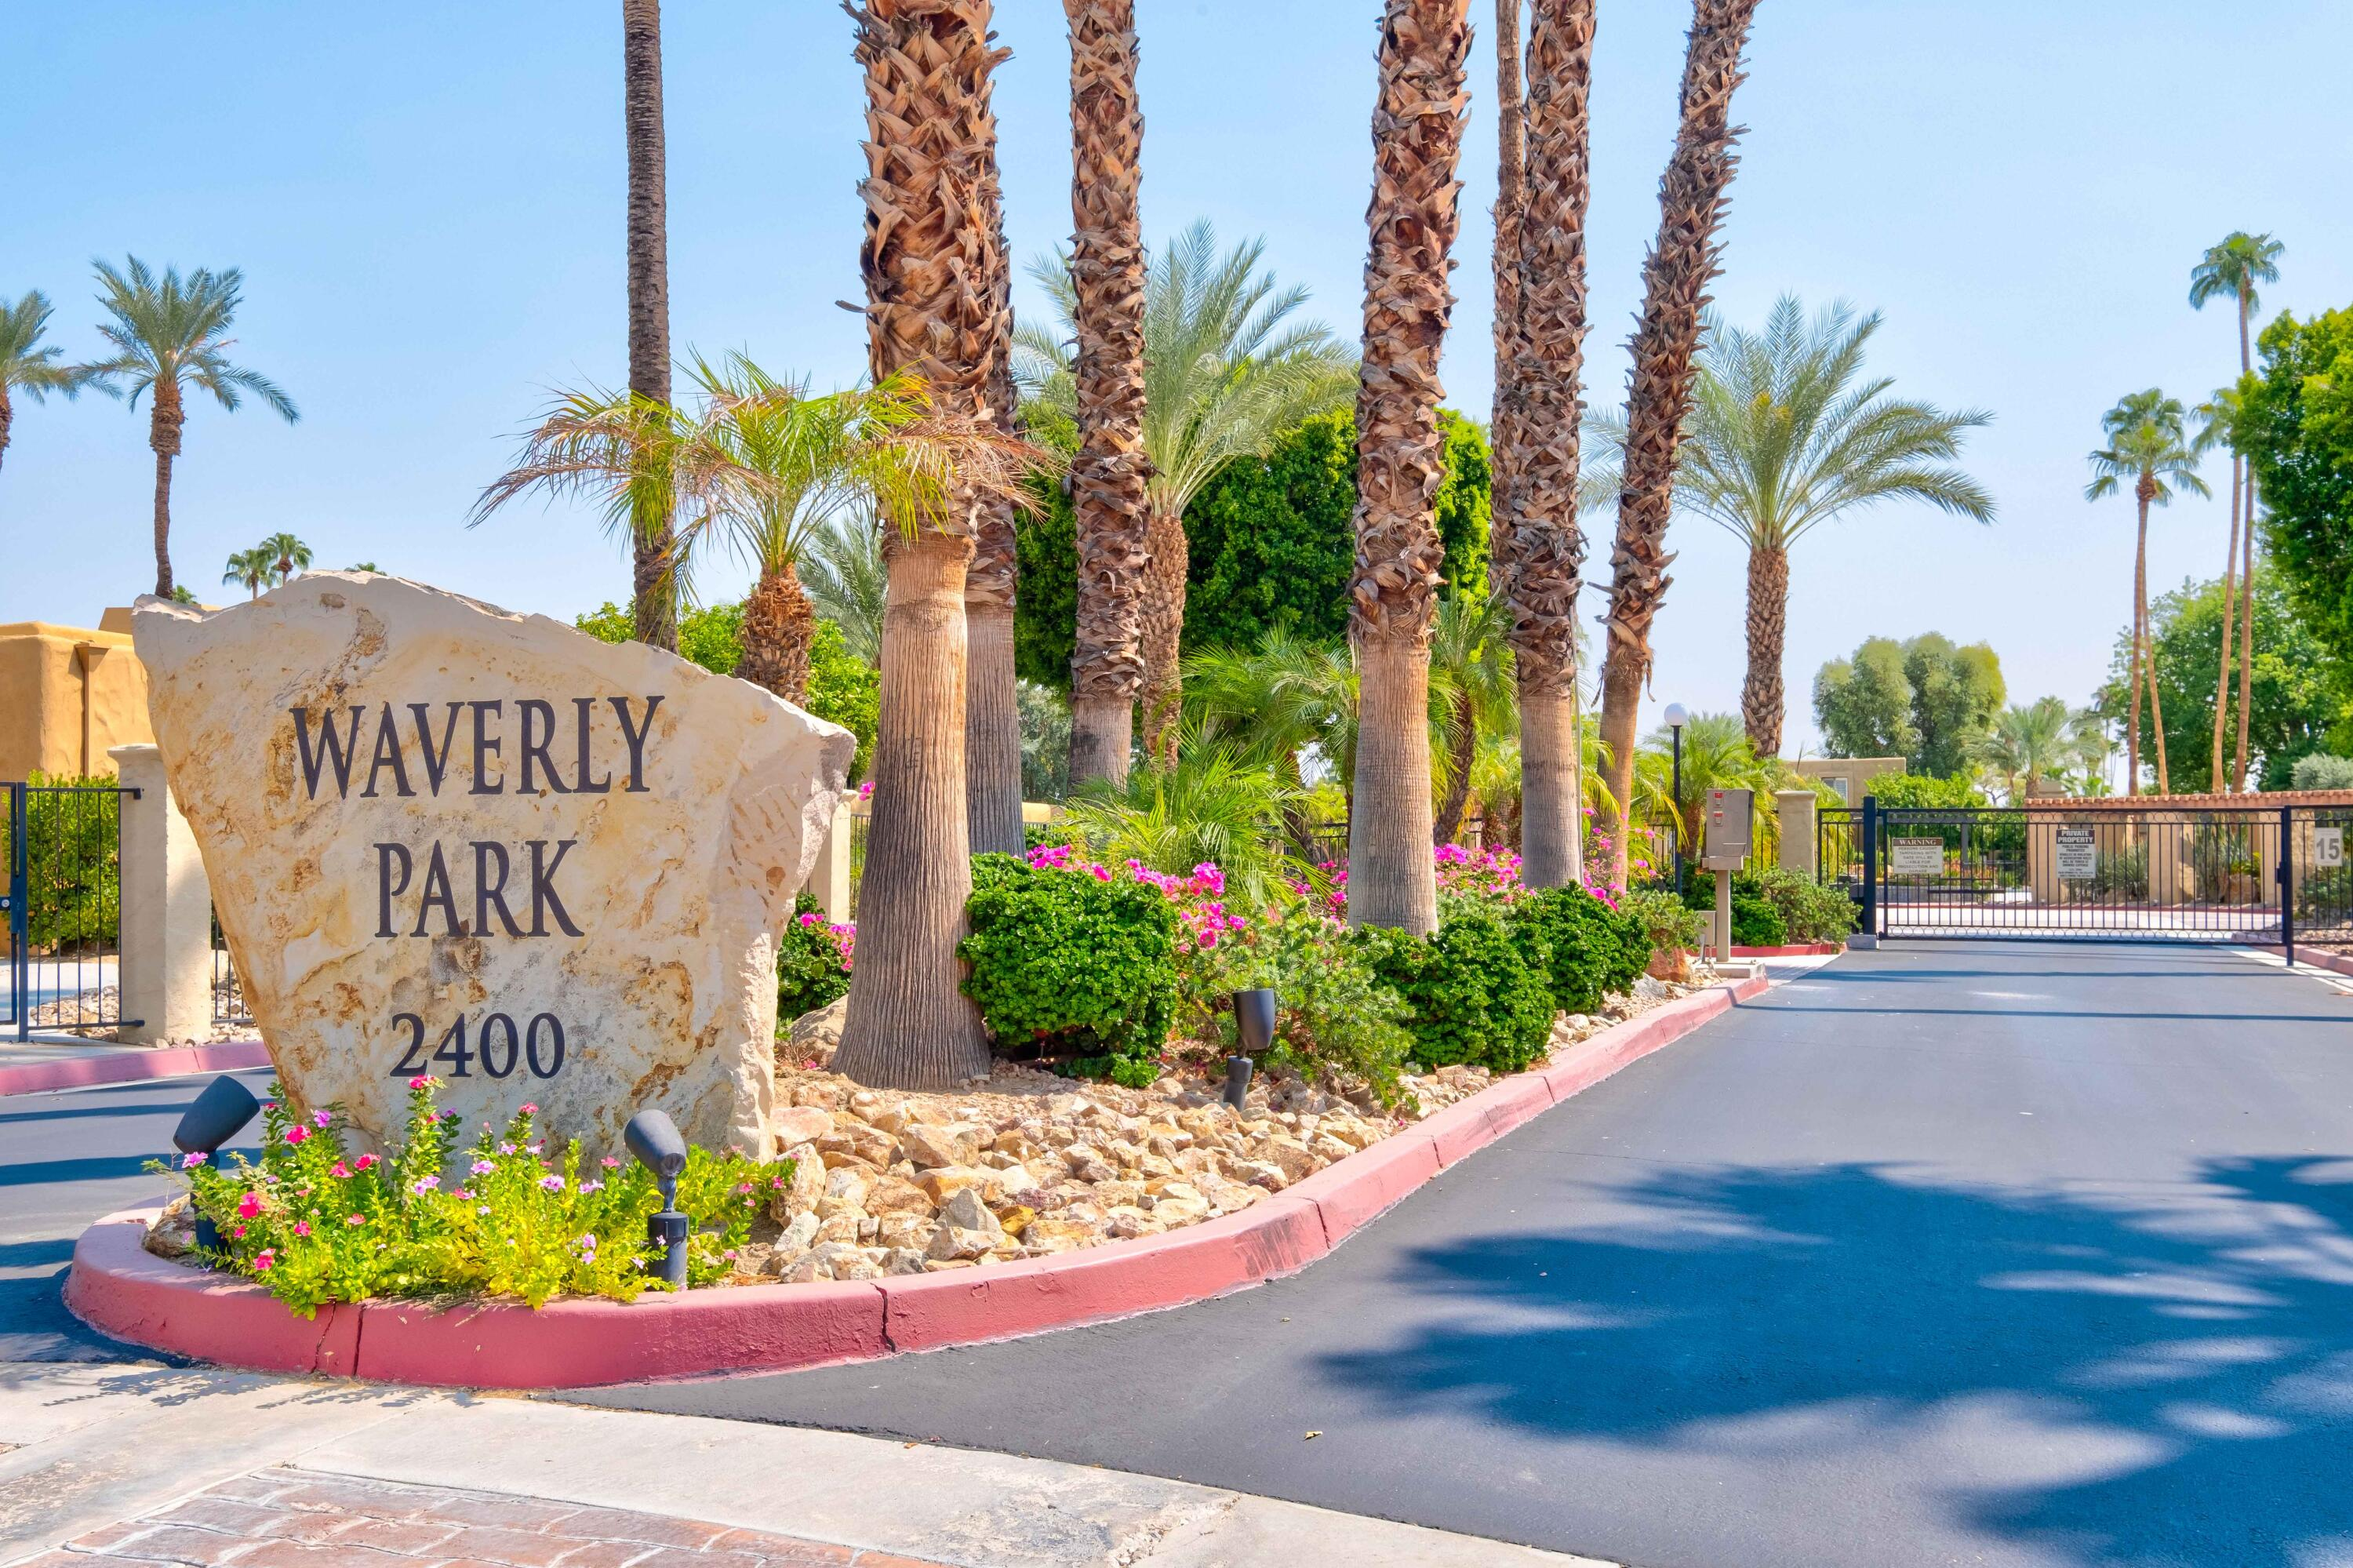 Enjoy the best of both worlds in this 2 BR/2BA Condo located in the beautifully landscaped Waverly Park Community of Palm Springs.  Front of condo faces S Birdie Way with a private gate to the front door. The 2 car attached garage and balance of the condo is within the gated community.  Upgrades include gently used newer appliances, less than 2 year old A/C and Furnace, Newer roller blinds throughout, newer plank porcelain floor tile throughout.  Both bathrooms recently updated with new fixtures, vanities and tile.  Granite countertops throughout the oversized kitchen.  Kitchen cabinets refaced with solid wood doors along with full wood drawers.  This 2 story condo has 3 outdoor spaces to enjoy the sunny weather in Palm Springs.  A large courtyard on the first floor, extra large second floor patio and front door gated area.  Second floor bedroom suite includes an extra large shower with walk in closet, private work from home area and access to the large balcony/patio.  The first floor bedroom suite includes 2 spacious closets.  Added household features include ADT security and Nest thermostat both smart phone accessible.  Waverly Park includes 3 pools, spas, tennis and pickle ball courts.  HOA fee includes water, trash and exterior building and grounds maintenance.  Rental minimum is 30 days with a history of rental prospects.  You own the land with this condo!  Furnishings available outside of escrow.  GPS - intersection of Birdie Way and N Winners Cir to Condo.